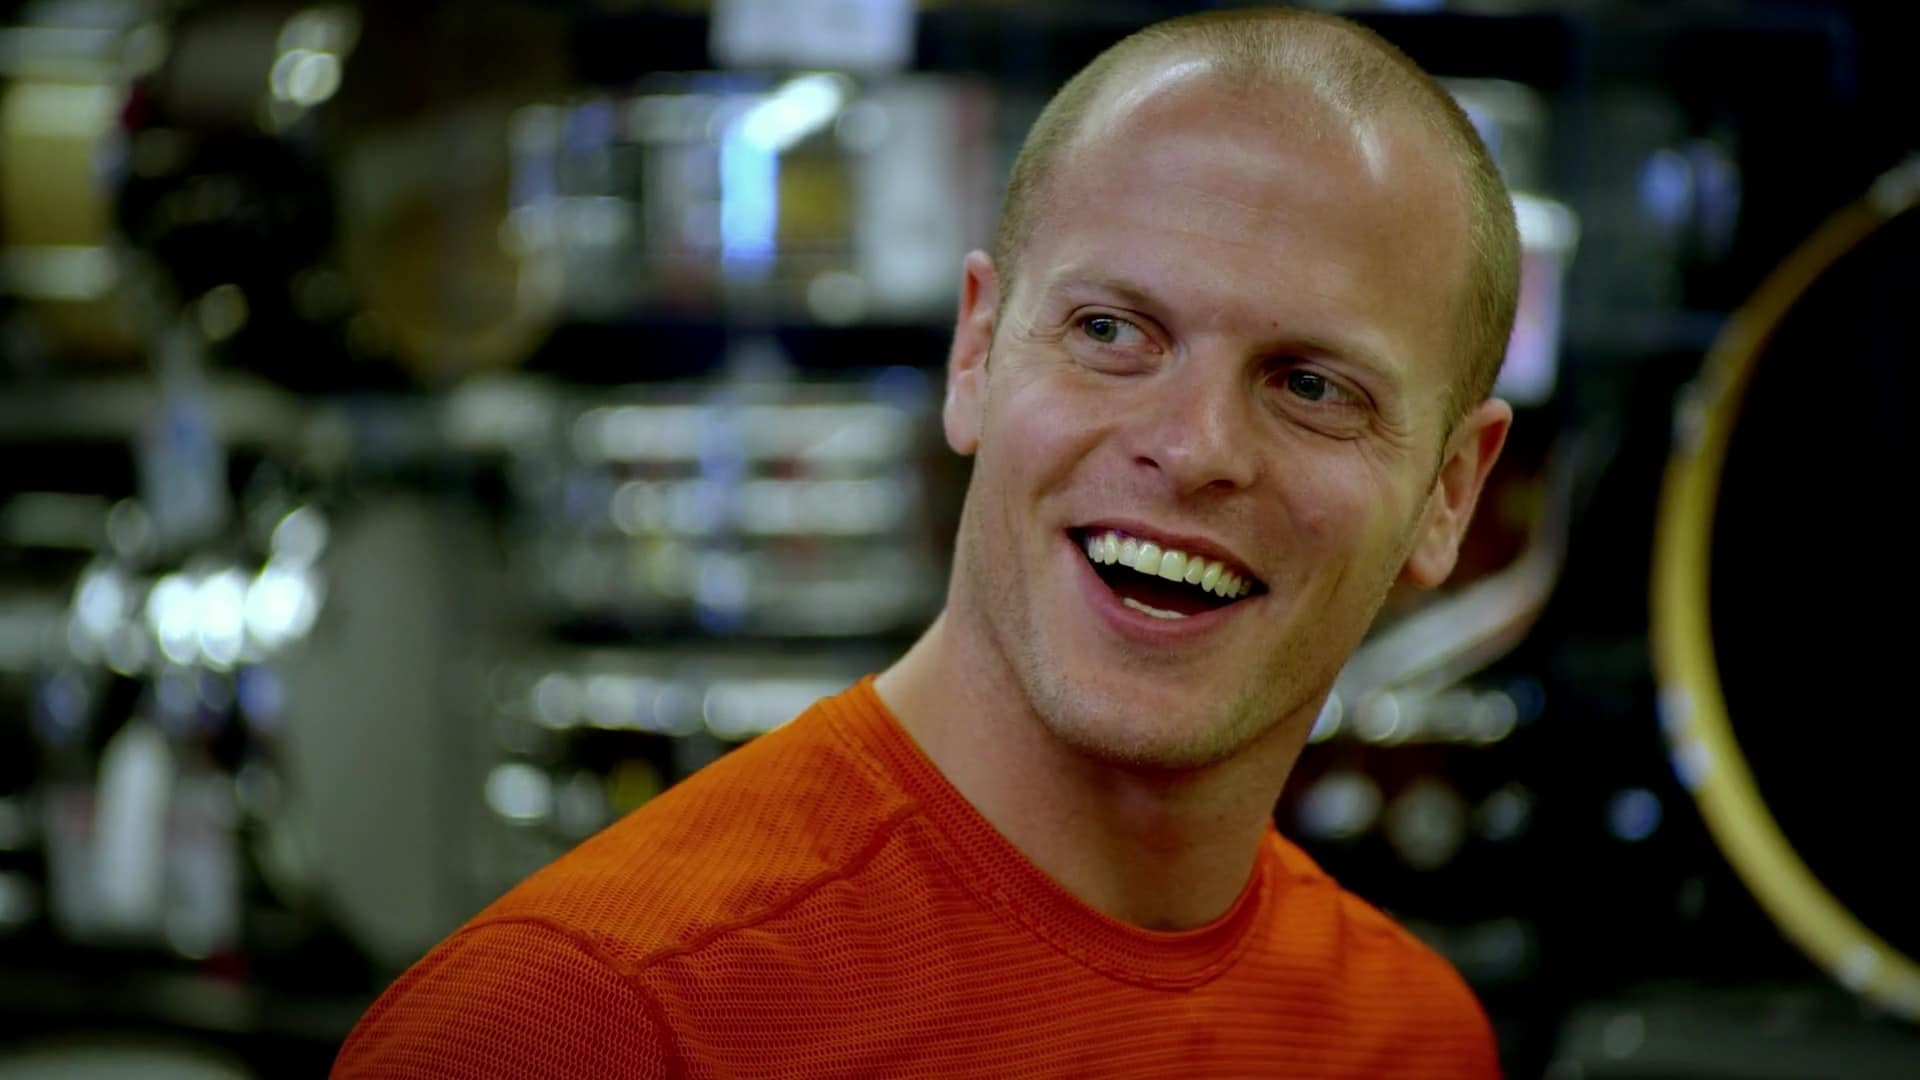 Author and Podcaster Tim Ferriss Leads Effort to Fund Psilocybin Research for Depression